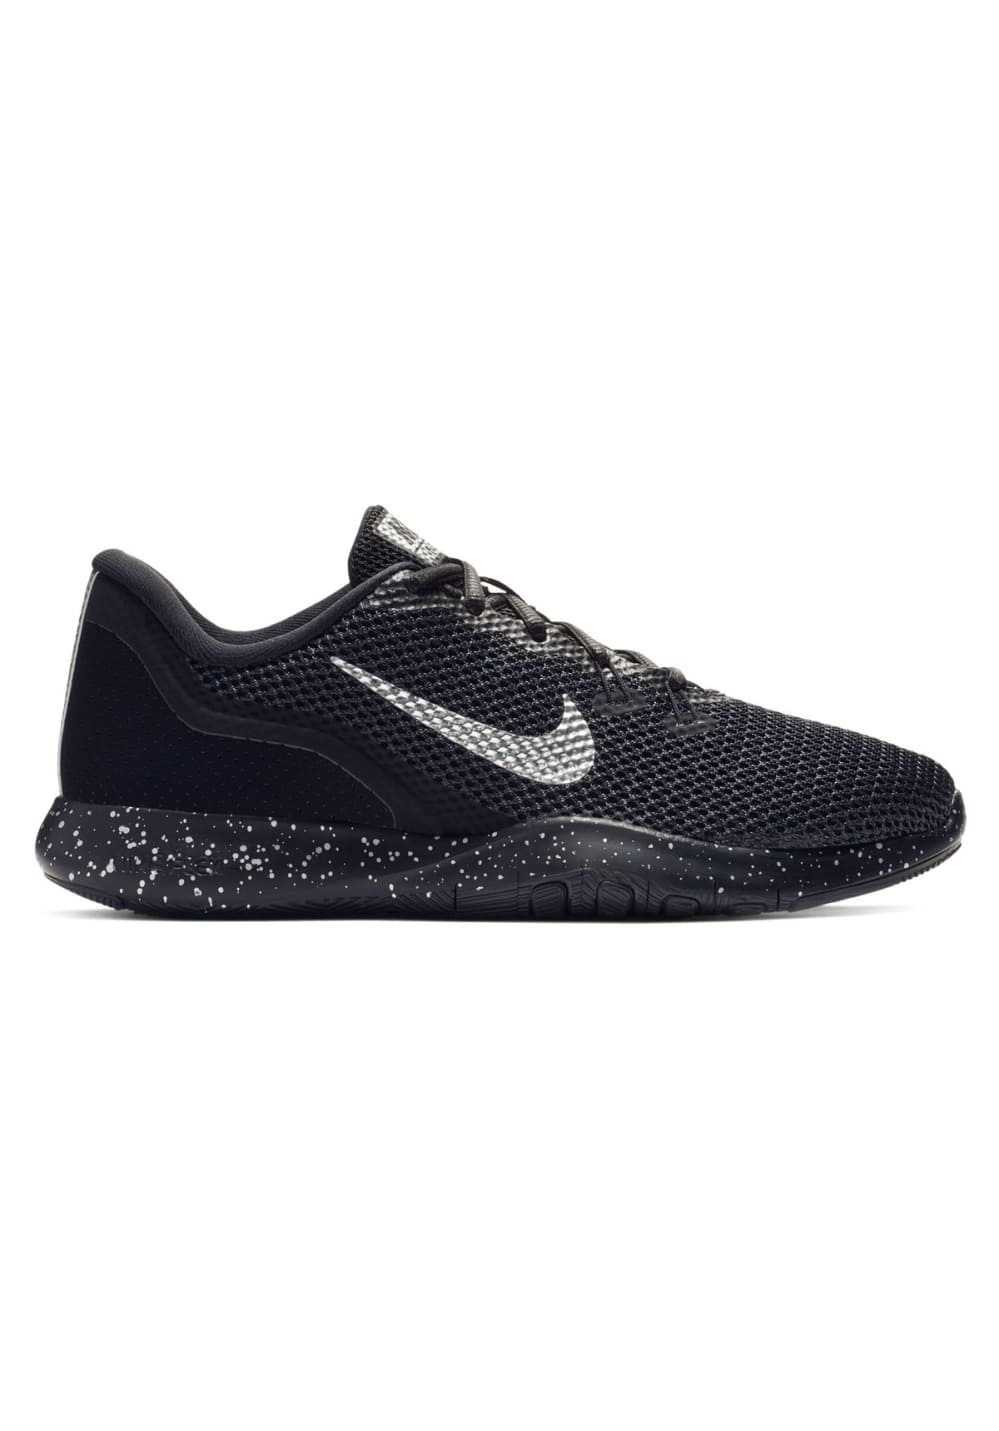 2e2135d7576b Next. -30%. This product is currently out of stock. Nike. Flex Trainer 7  Premium - Fitness shoes for Women